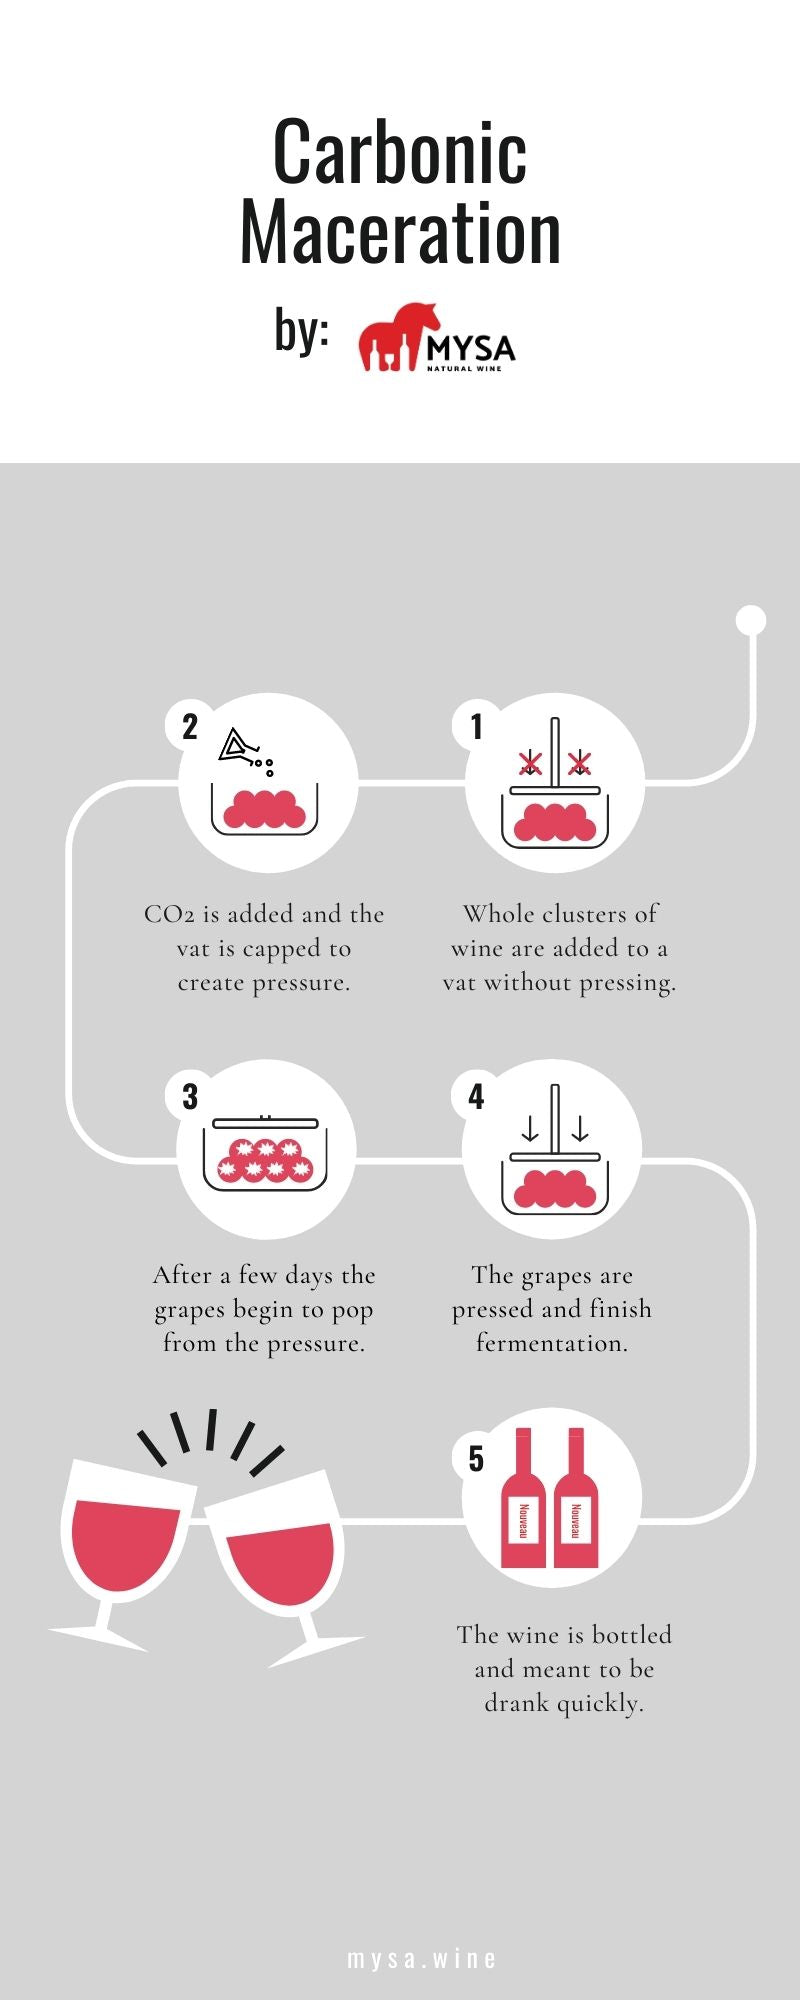 Carbonic Maceration Infographic